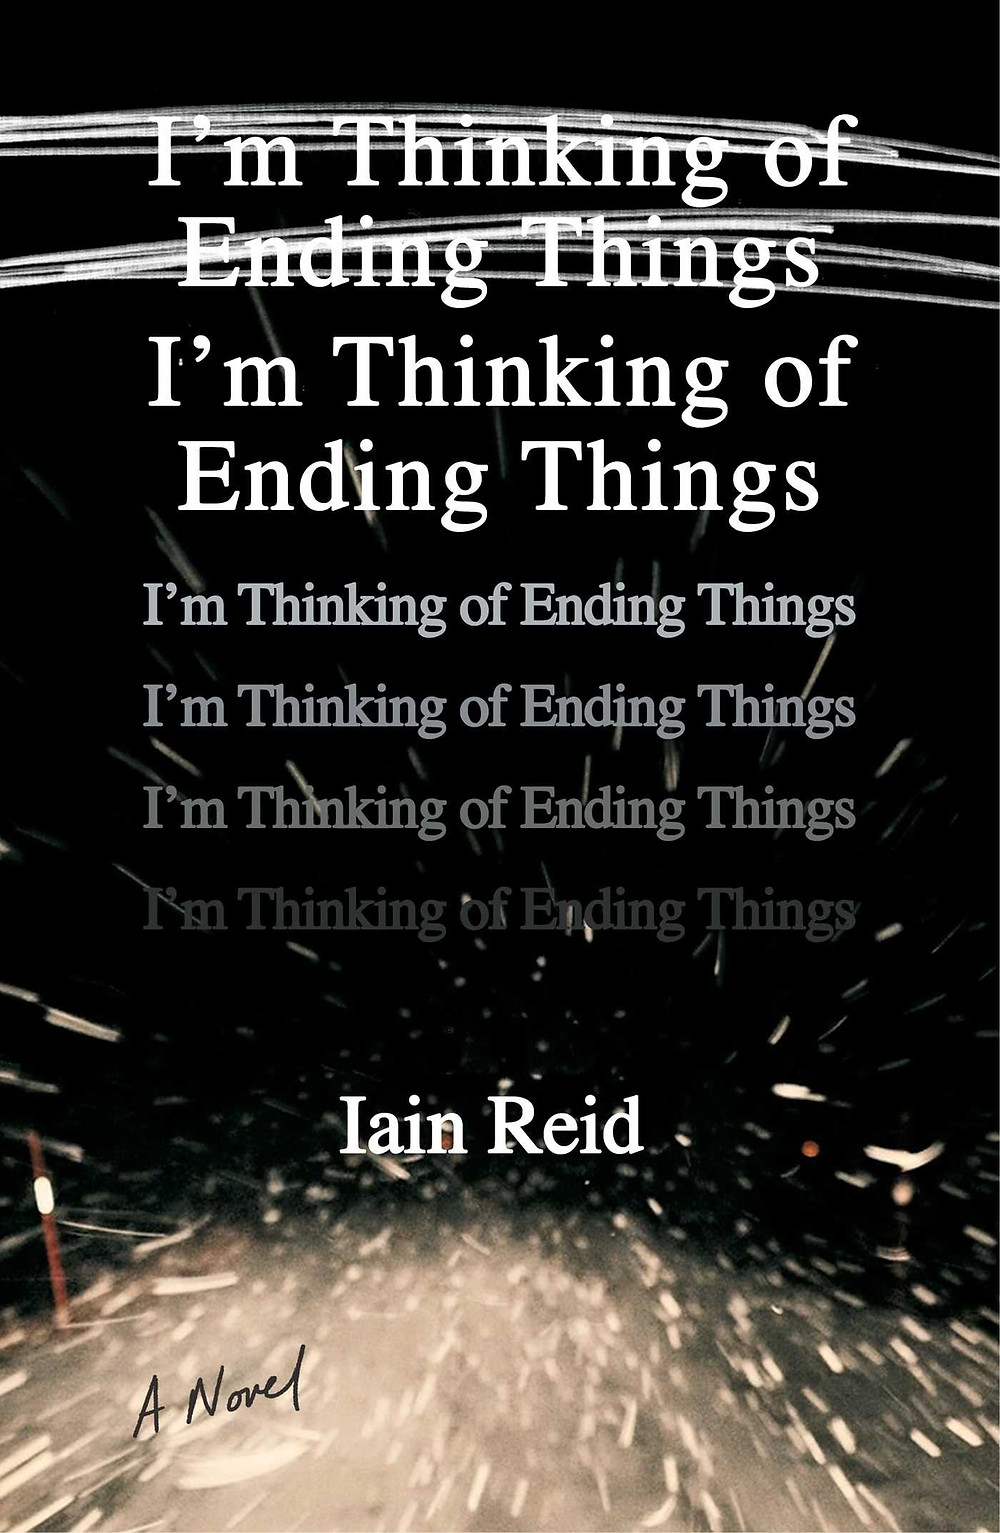 I'm thinking of ending things by Iain Reid book cover